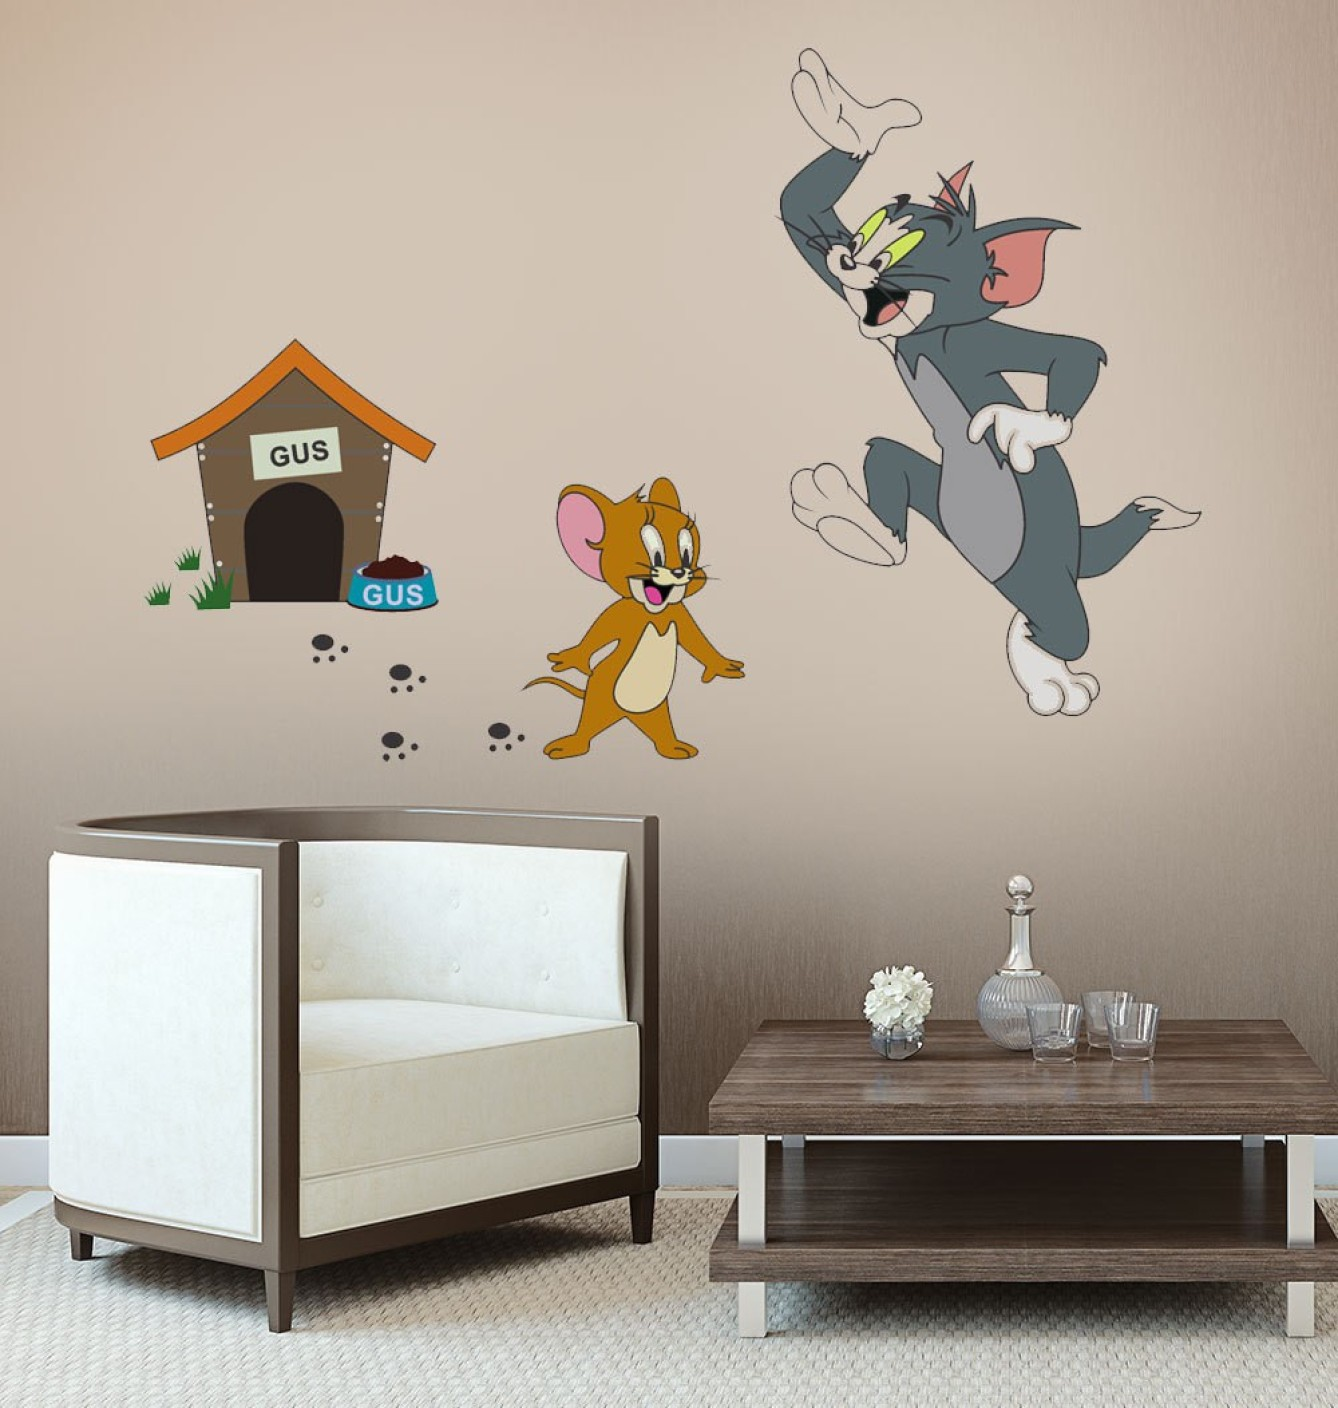 100 756 best wall decals images apply fun wall decals to for What kind of paint to use on kitchen cabinets for wall sticker posters